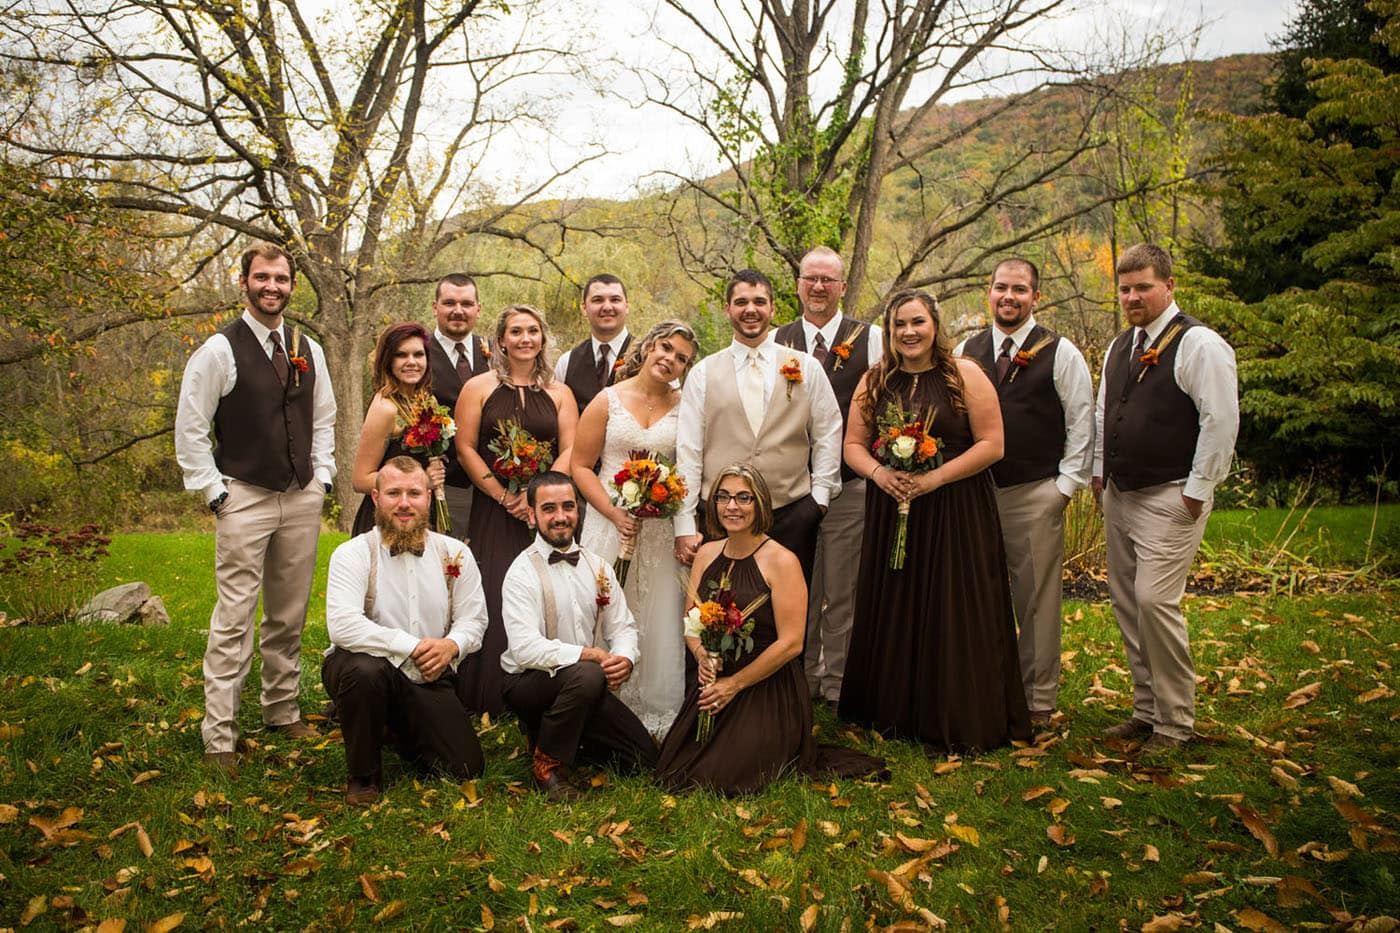 General Potter Farm Wedding, State College, PA - Bob Lambert Photography